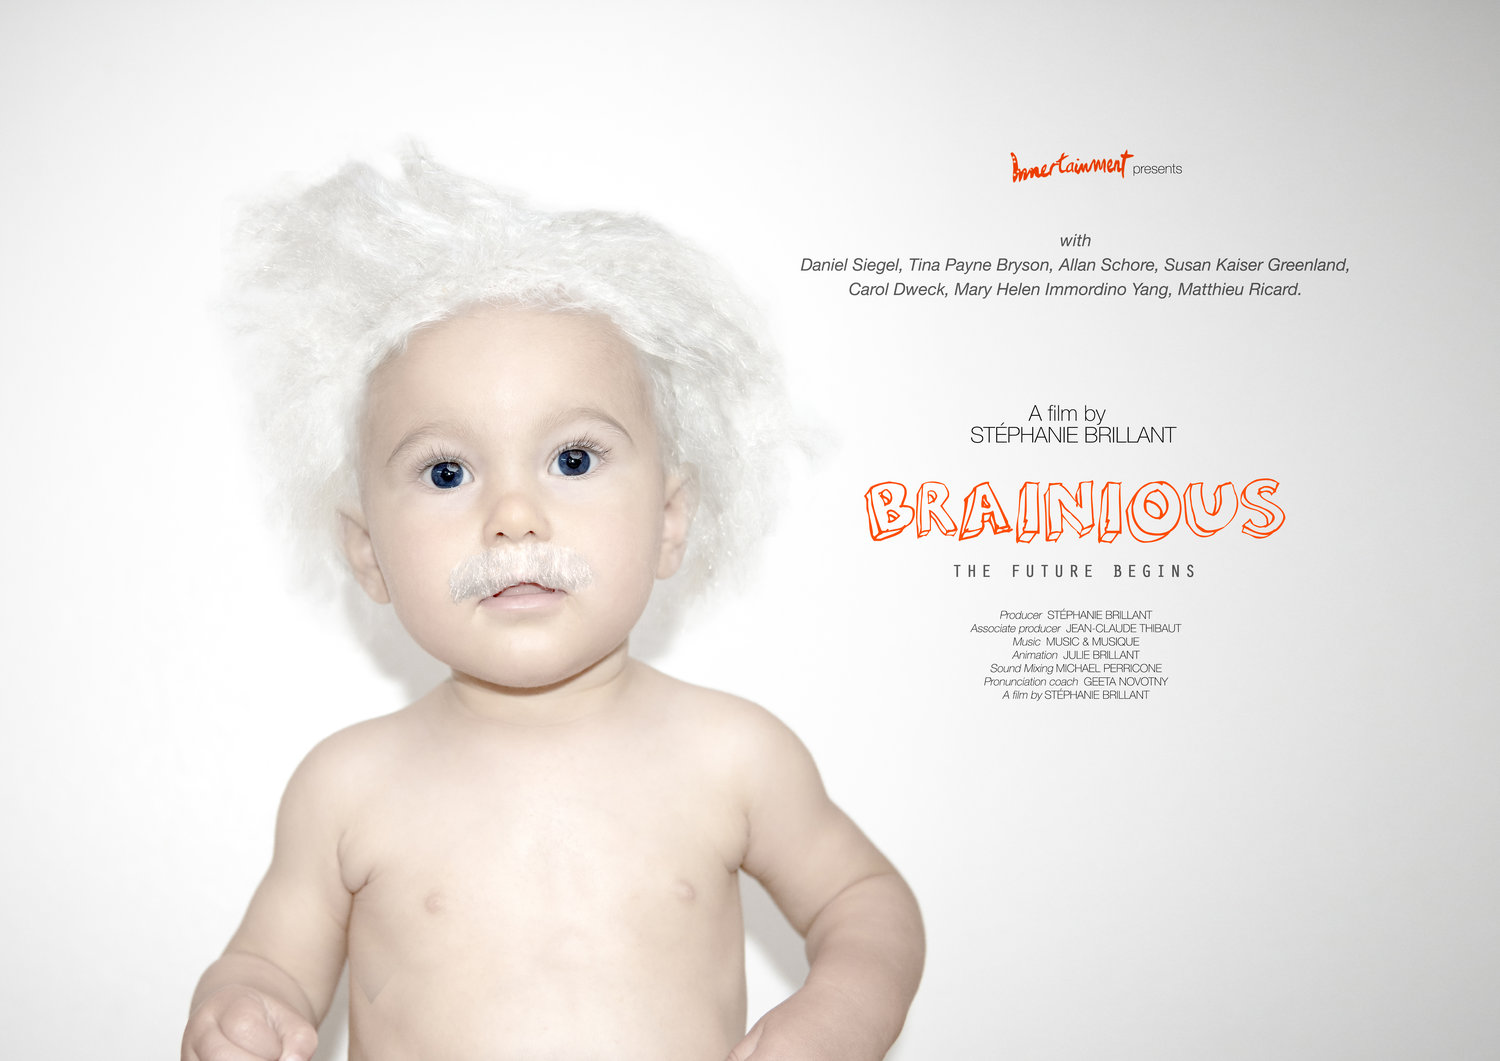 BRAINIOUS delves into the fascinating topic of neuroscience, explaining how childhood experiences shape our brain.